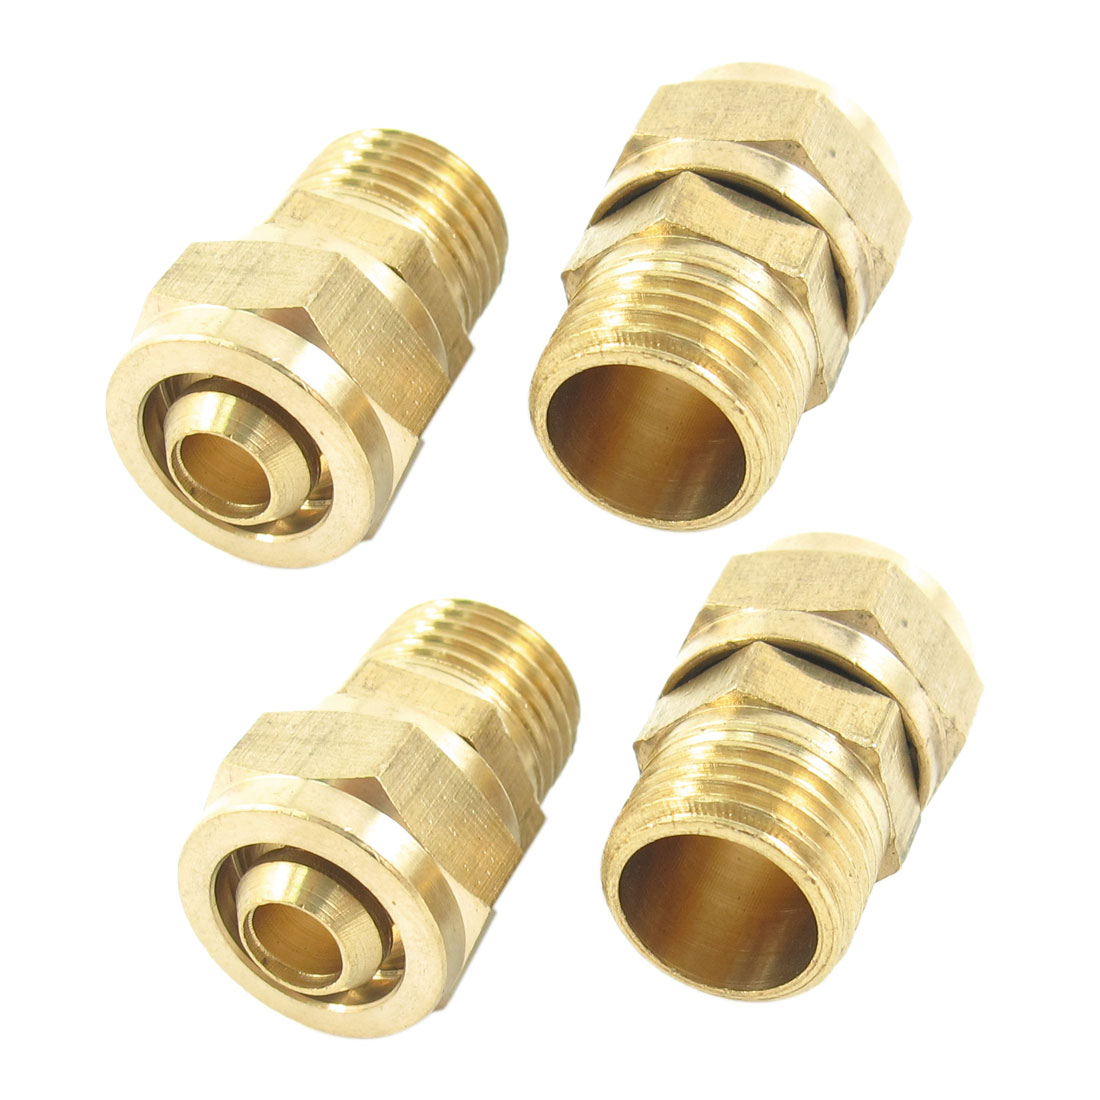 4 Pcs 1/4PT Male Threaded 10mm x 6.5mm Tube Air Pneumatic Pipe Connector Joint Adapter